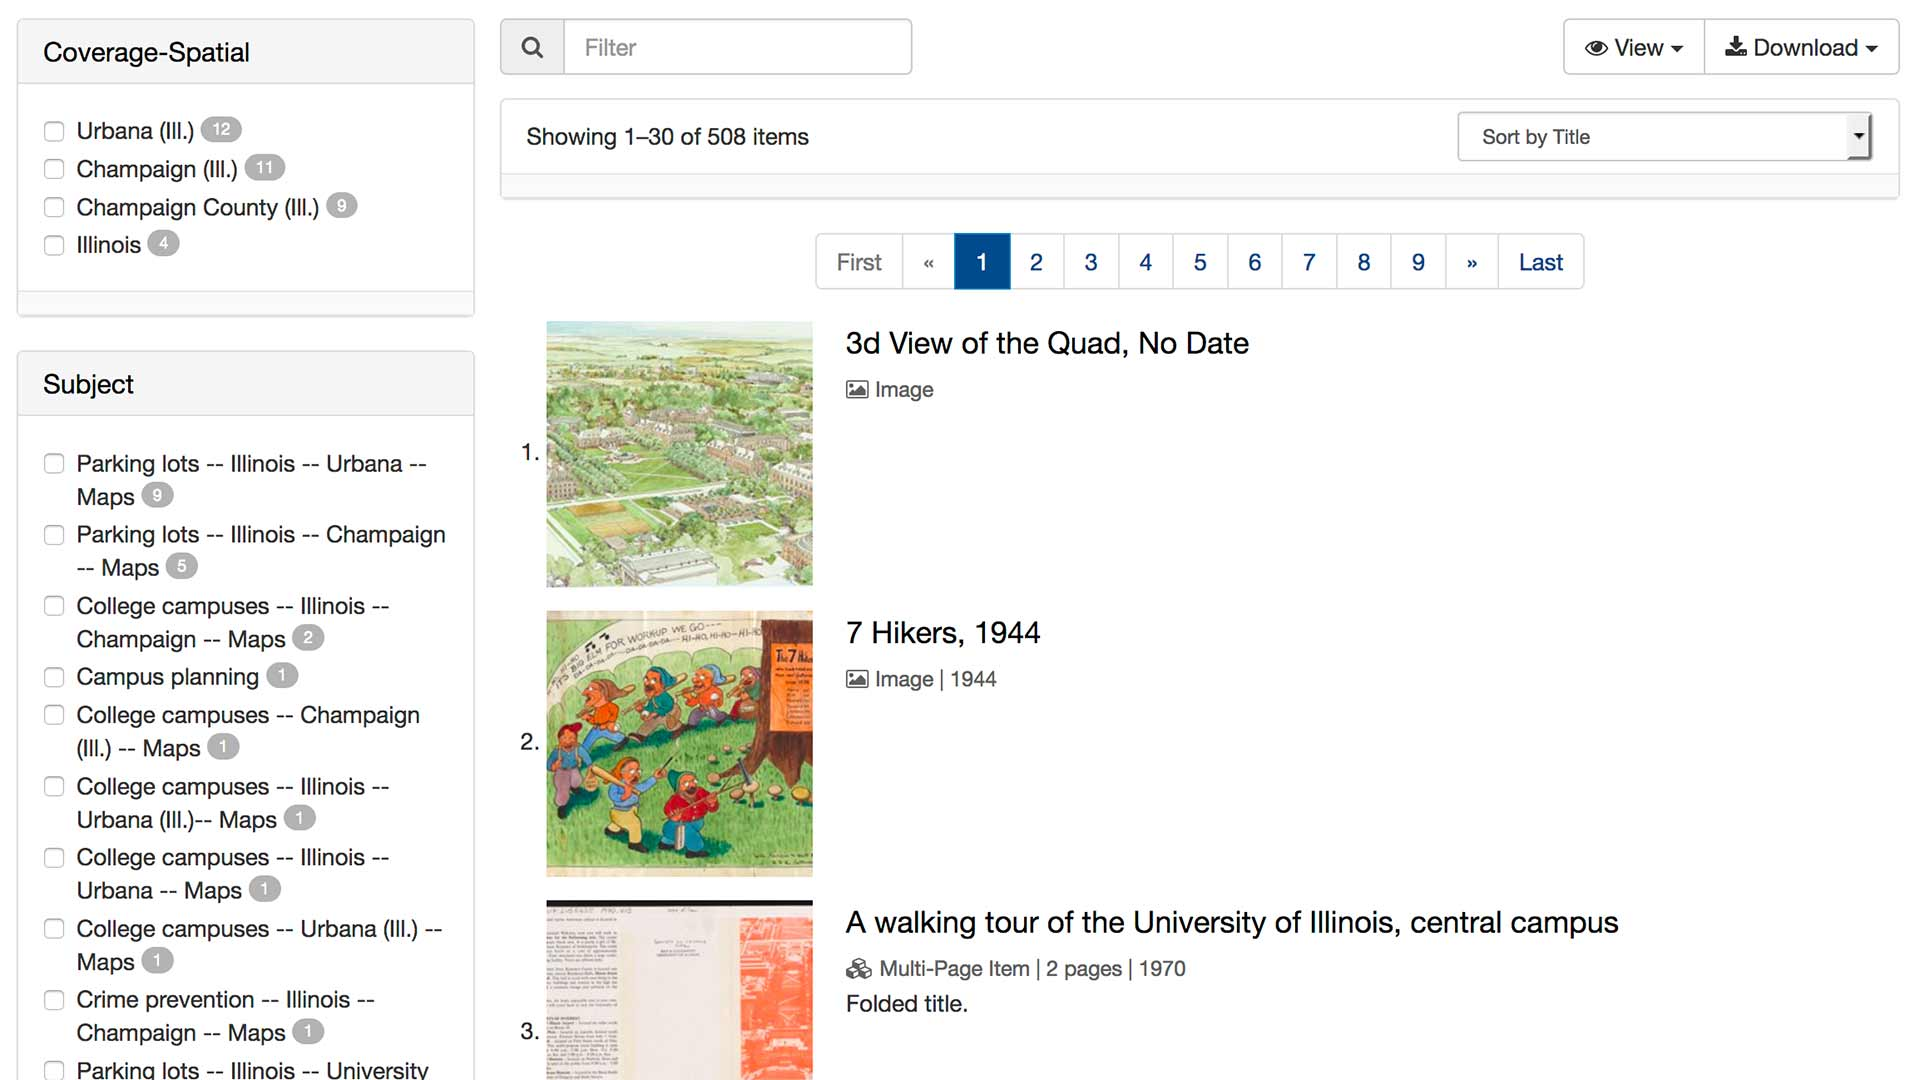 screenshot showing 3 maps/images, filters, and a list of 508 items